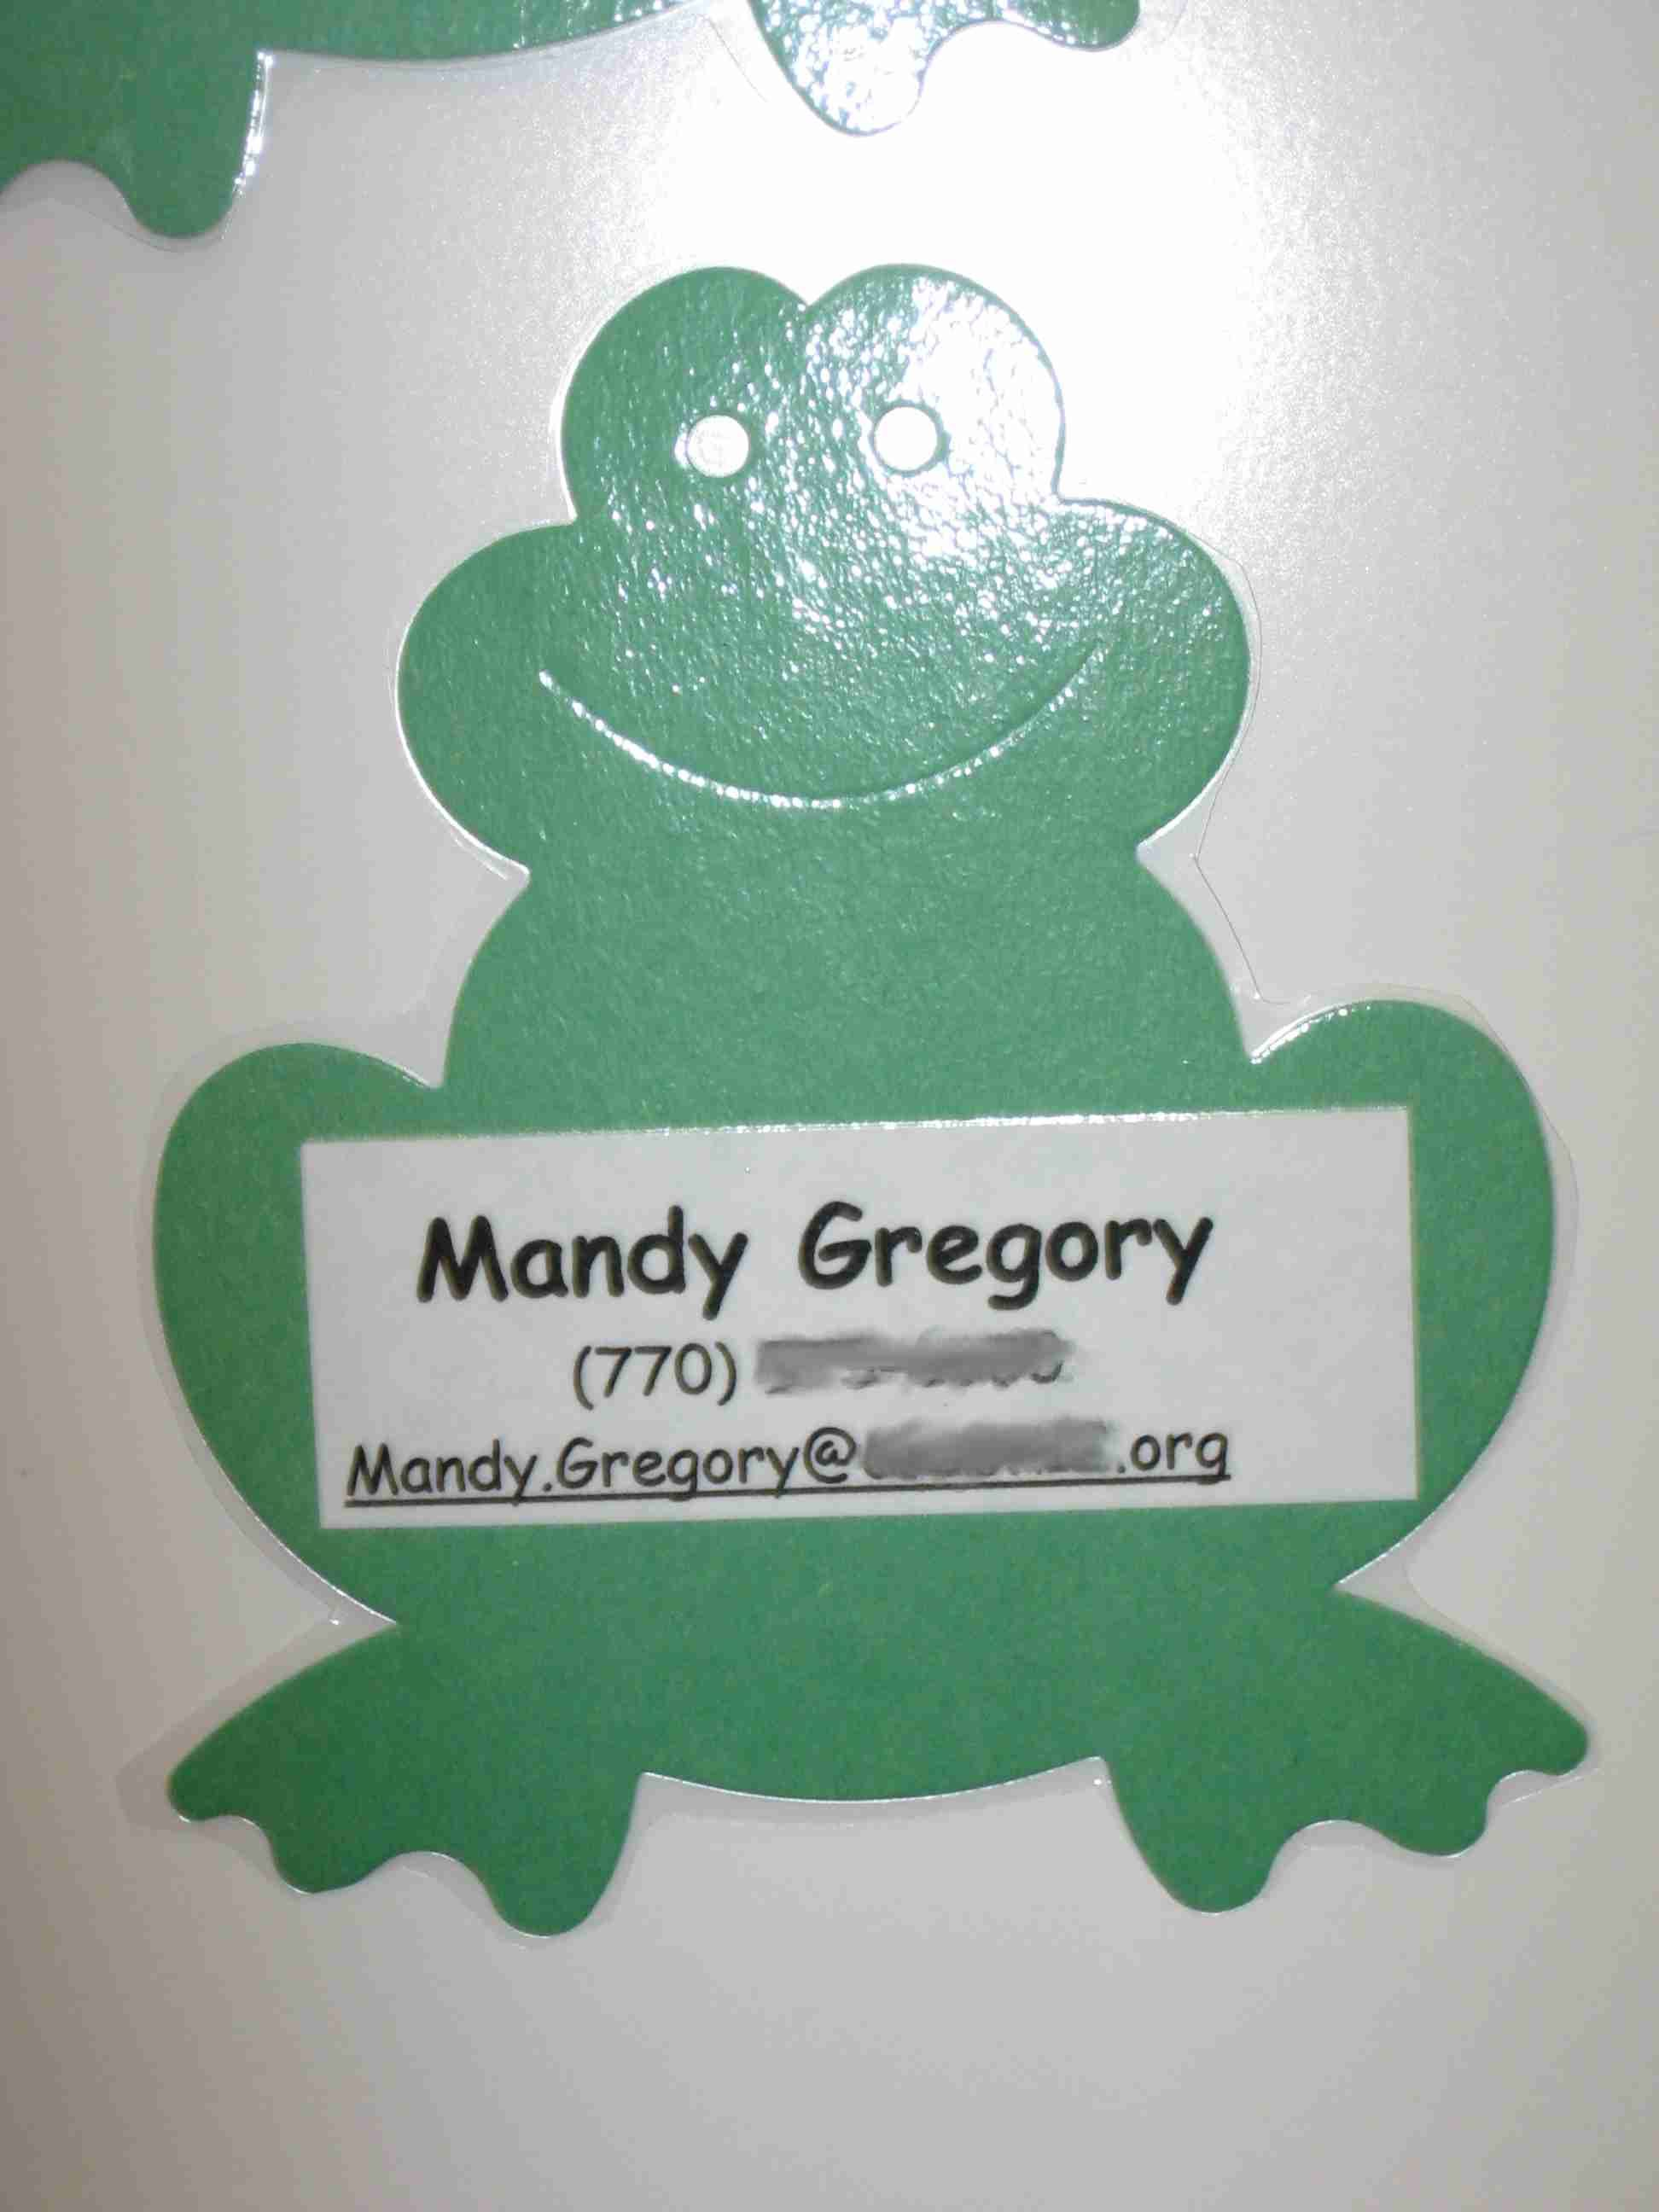 Teacher business cards Use any cut shape add a label with